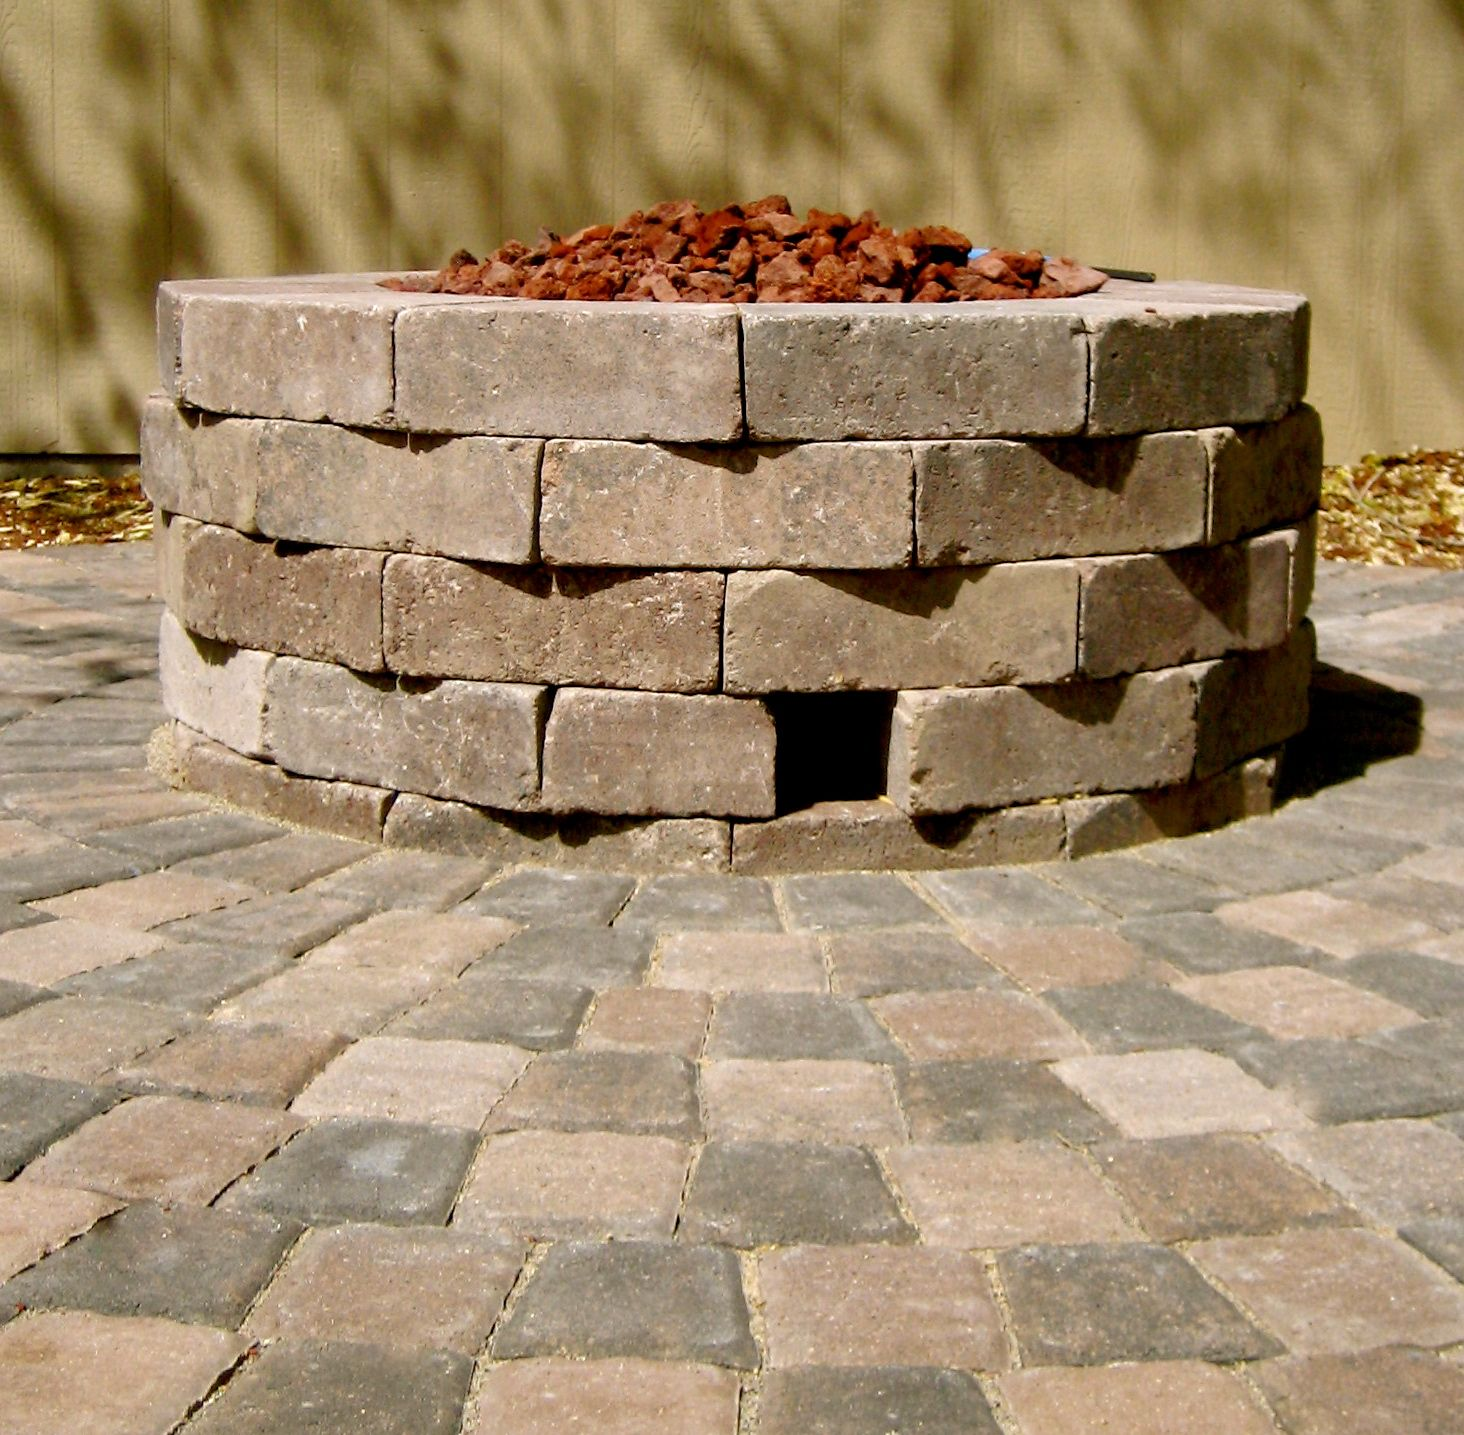 Circular Paver Patio Made With Square Stones Surrounding An Off Set Rectangular Brick Custom Designed Gas Fire Pit Landscaping Gazebo With Fire Pit Fire Pit